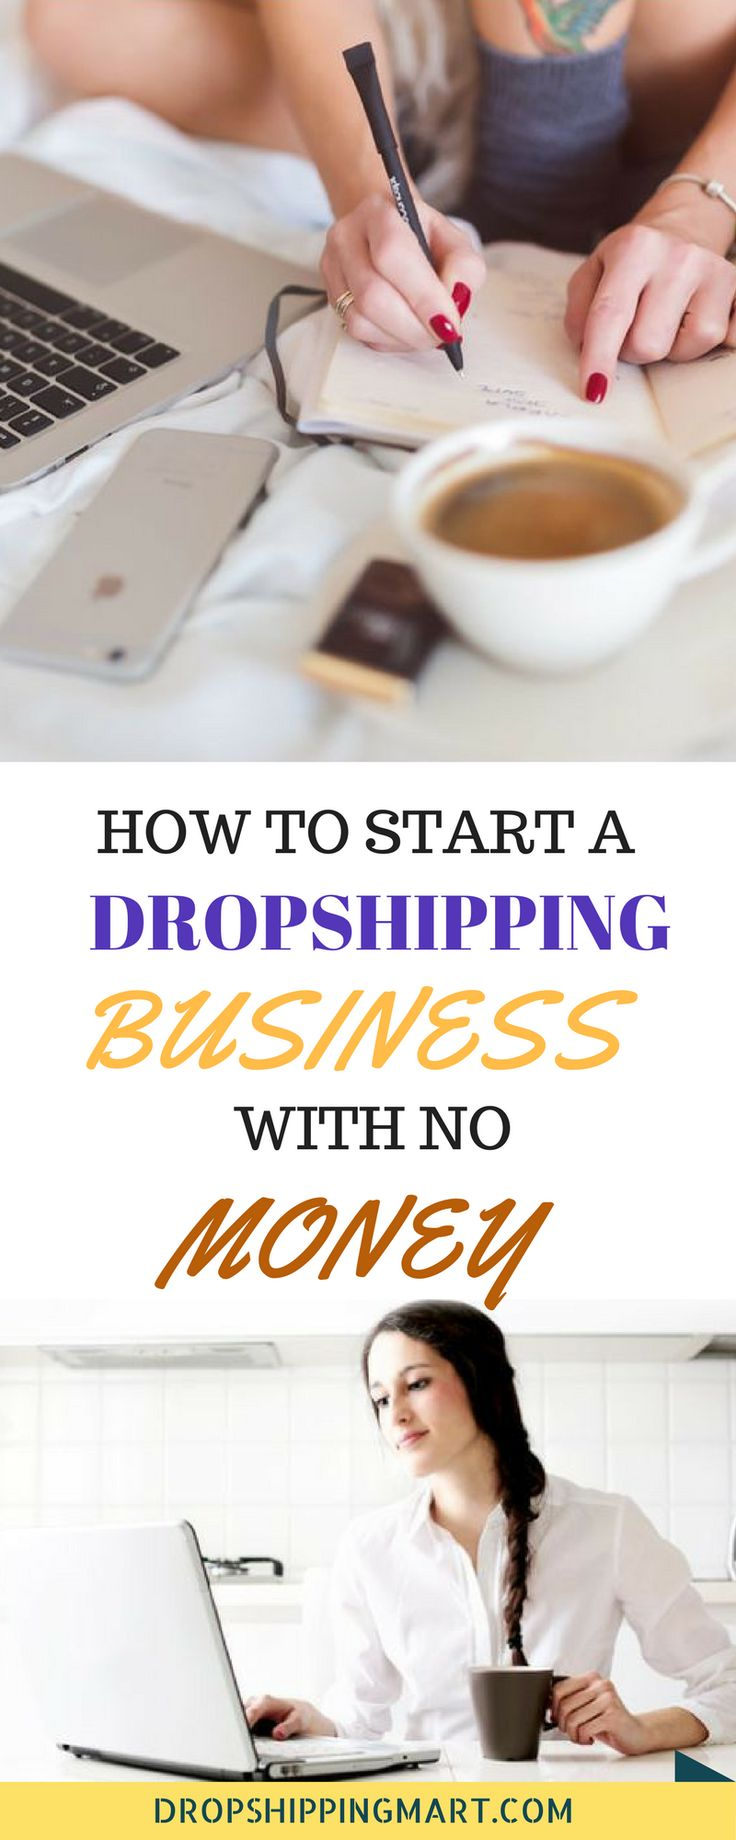 Dropshipping Business How To Make Money Working From Home? Looking For Work  From Home